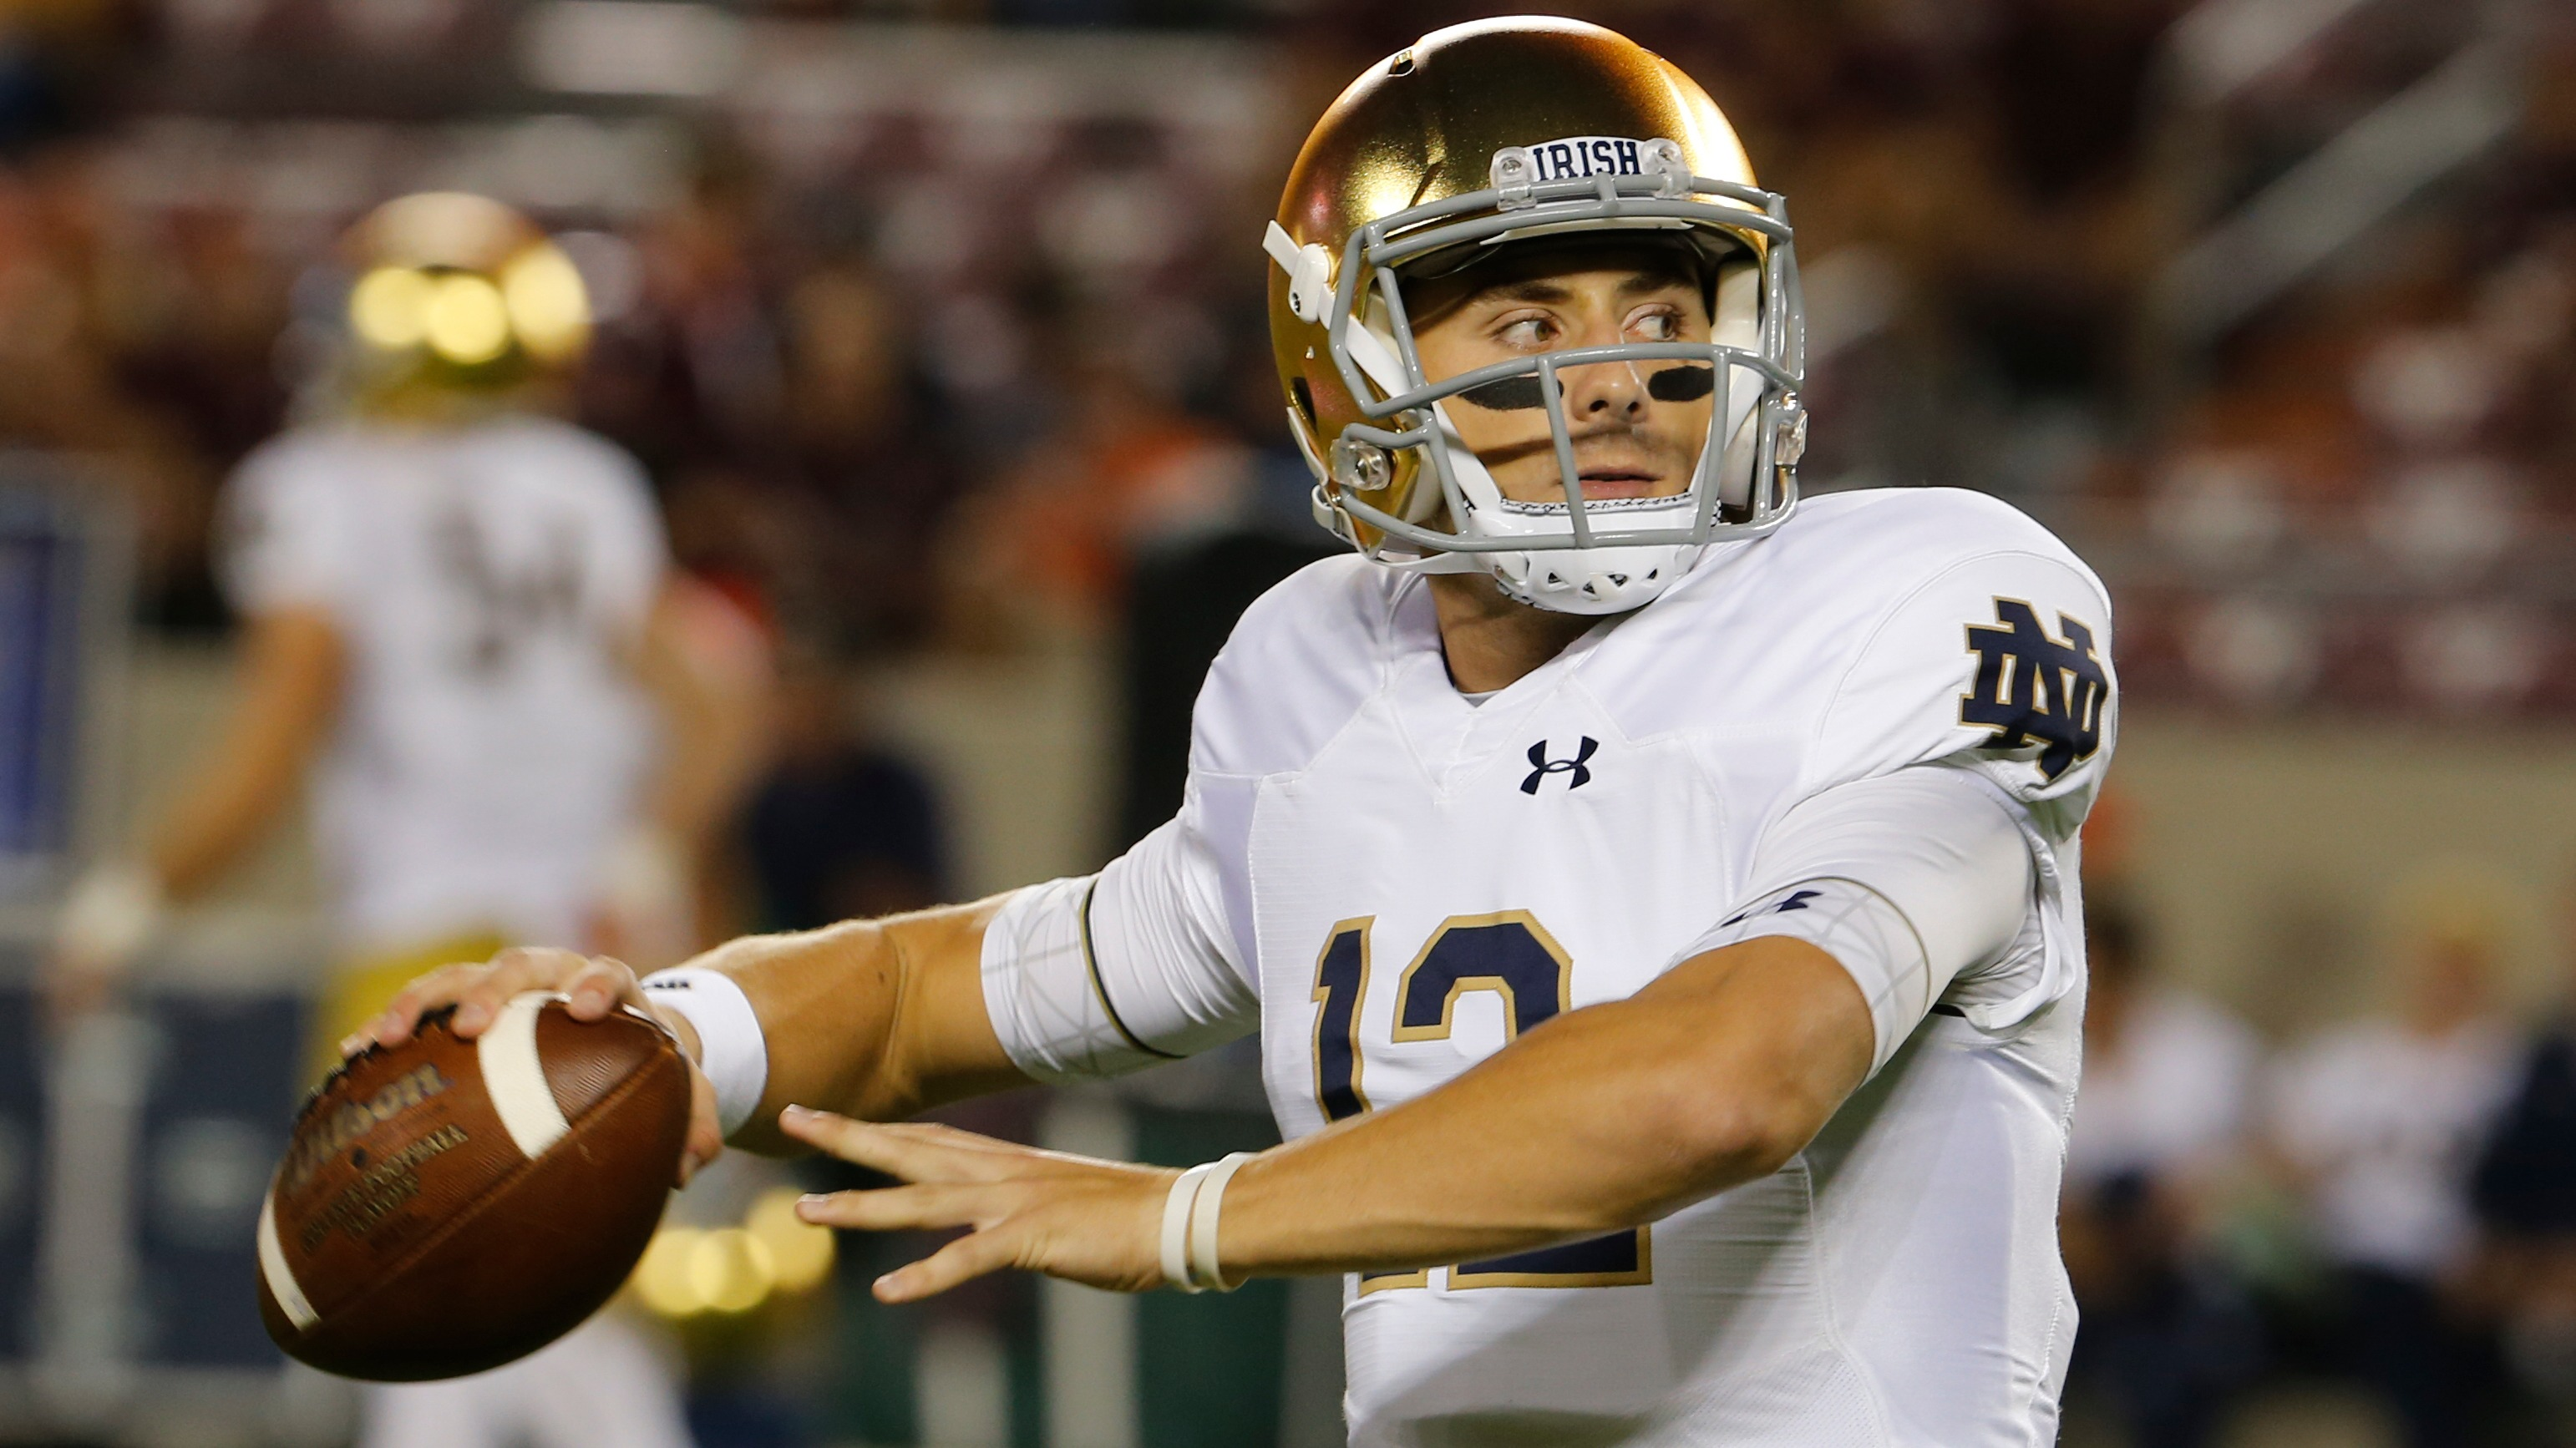 Nd vs pitt betting line horse race betting online in india